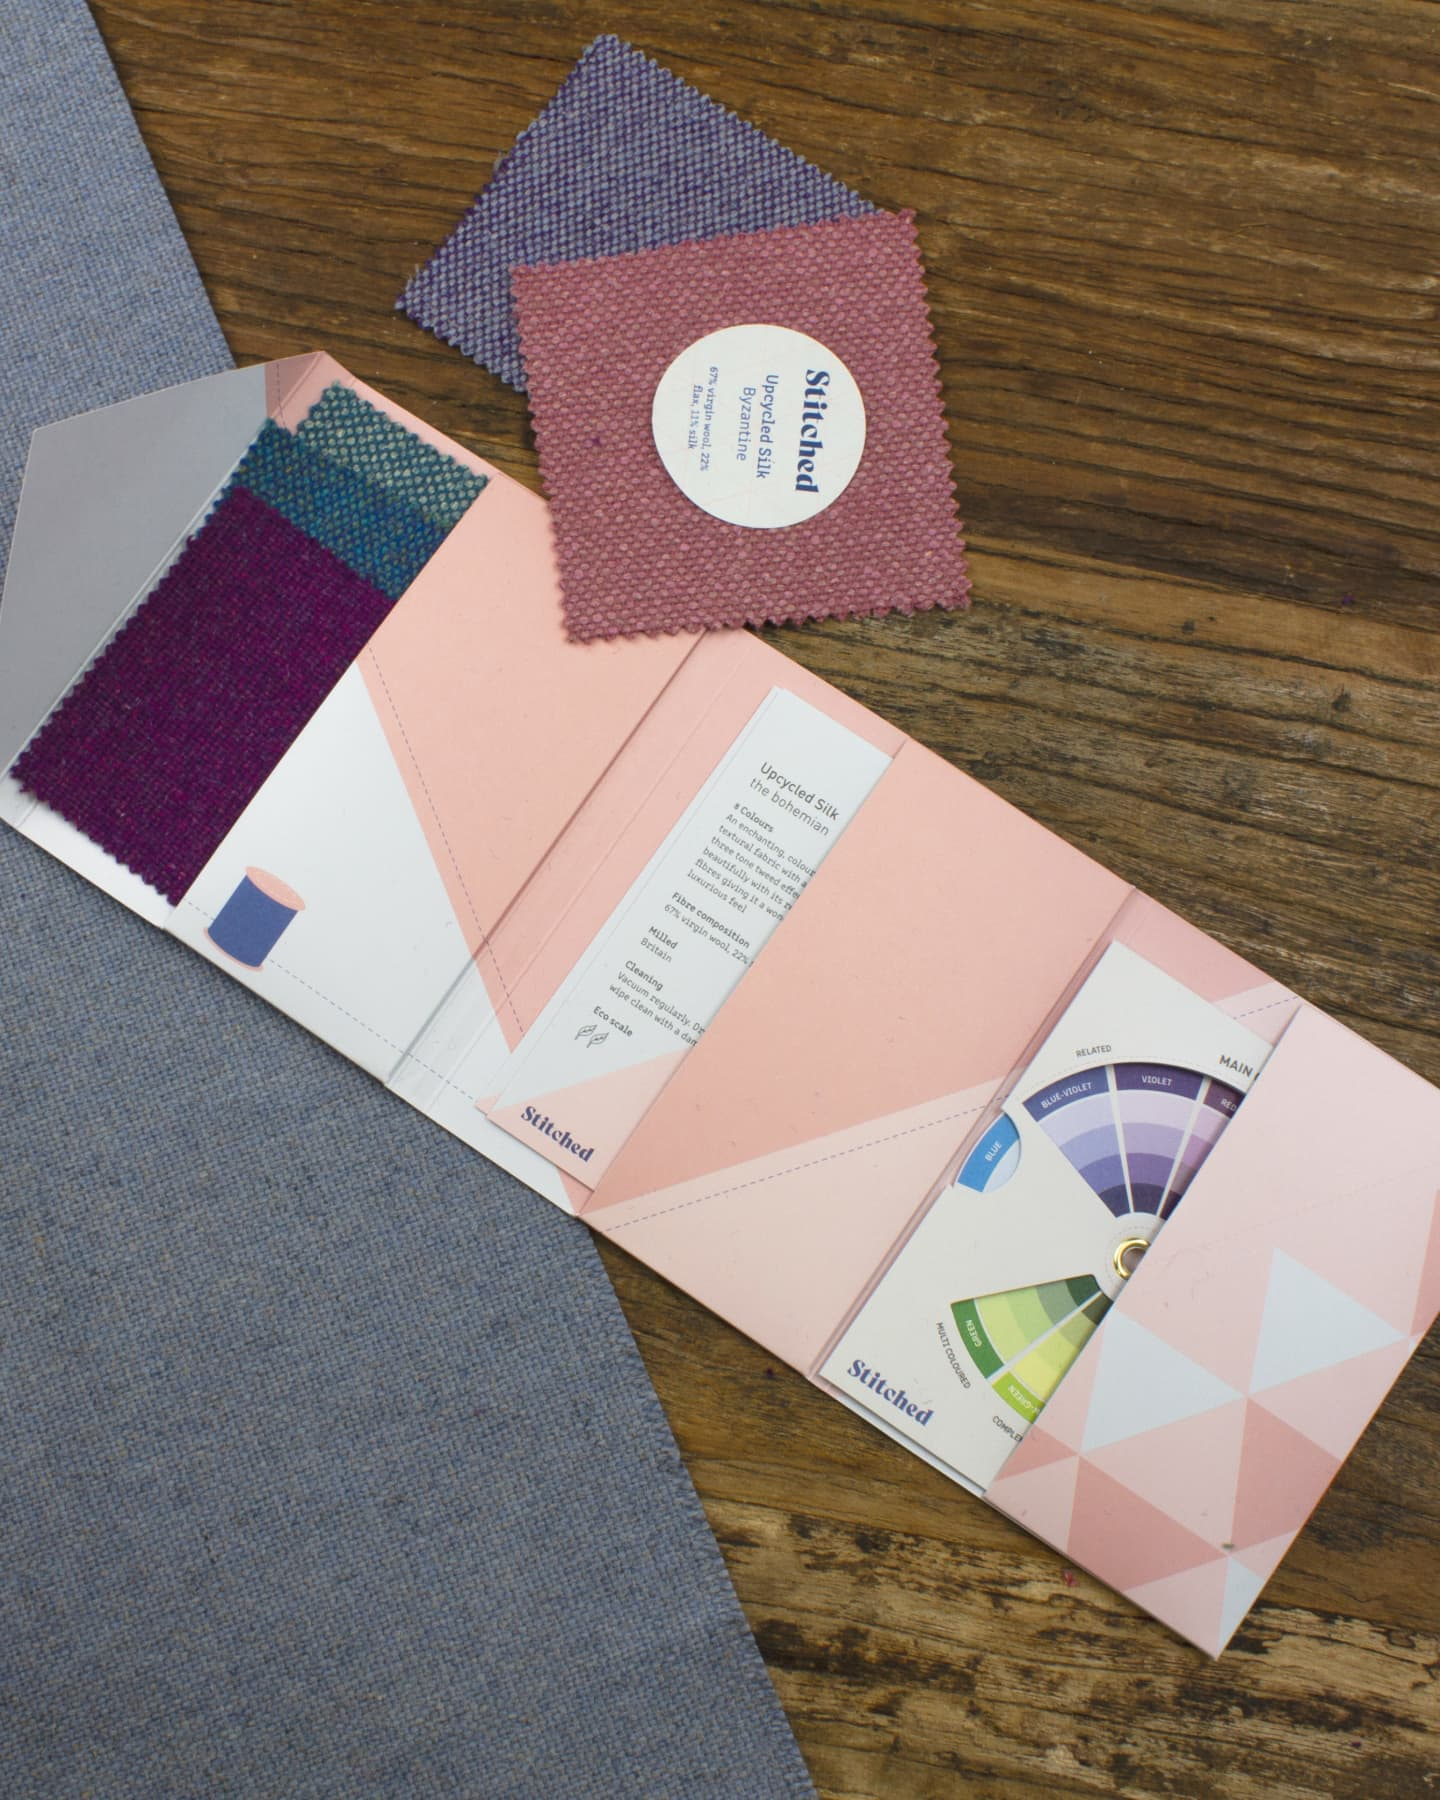 Stitched sample pack, lay down on the table